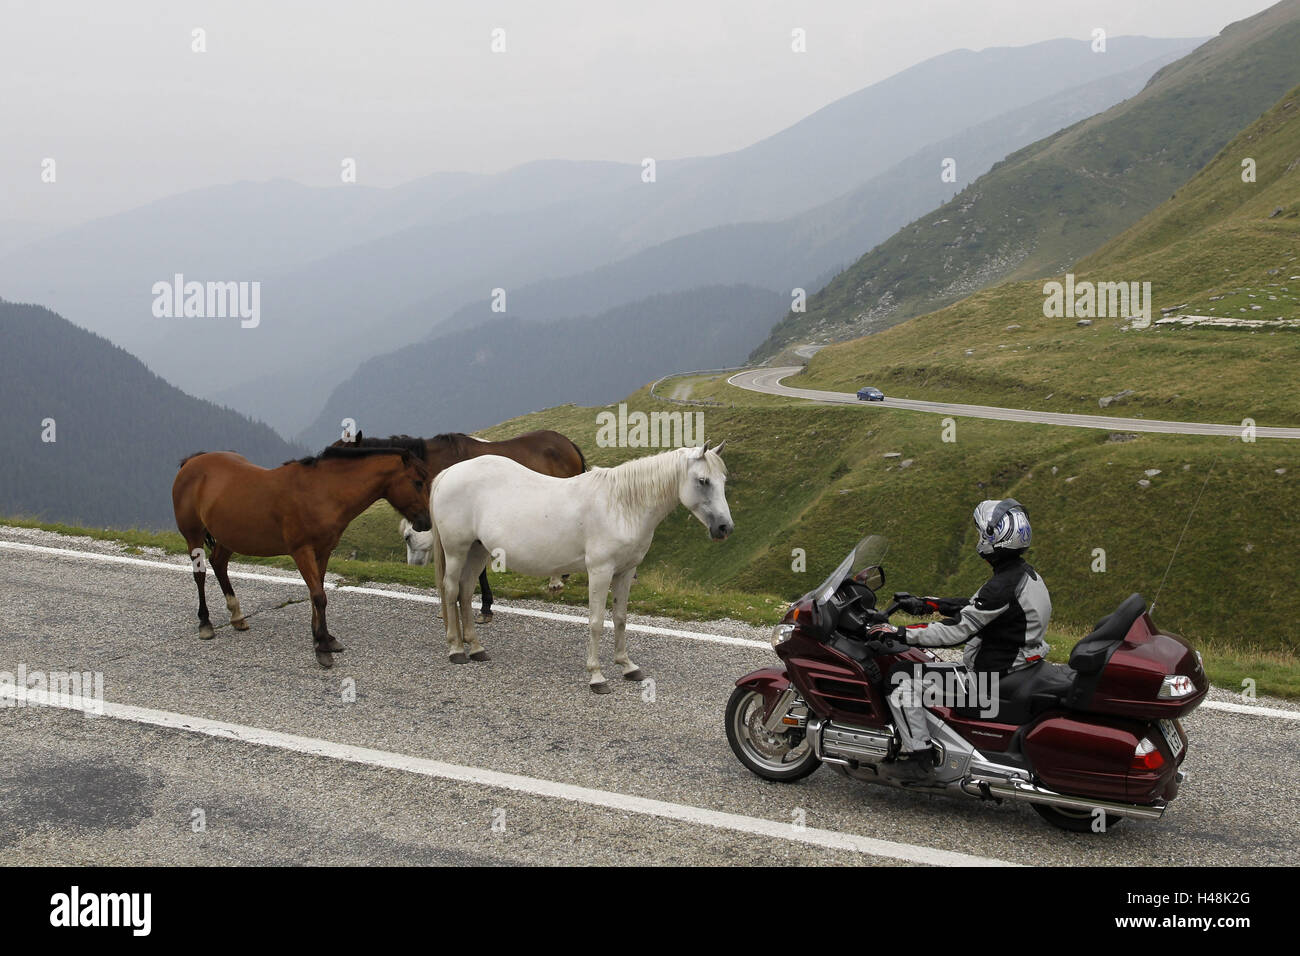 Motorcyclist, alp ambience, country road, travel motorcycle, horses on pavement, - Stock Image